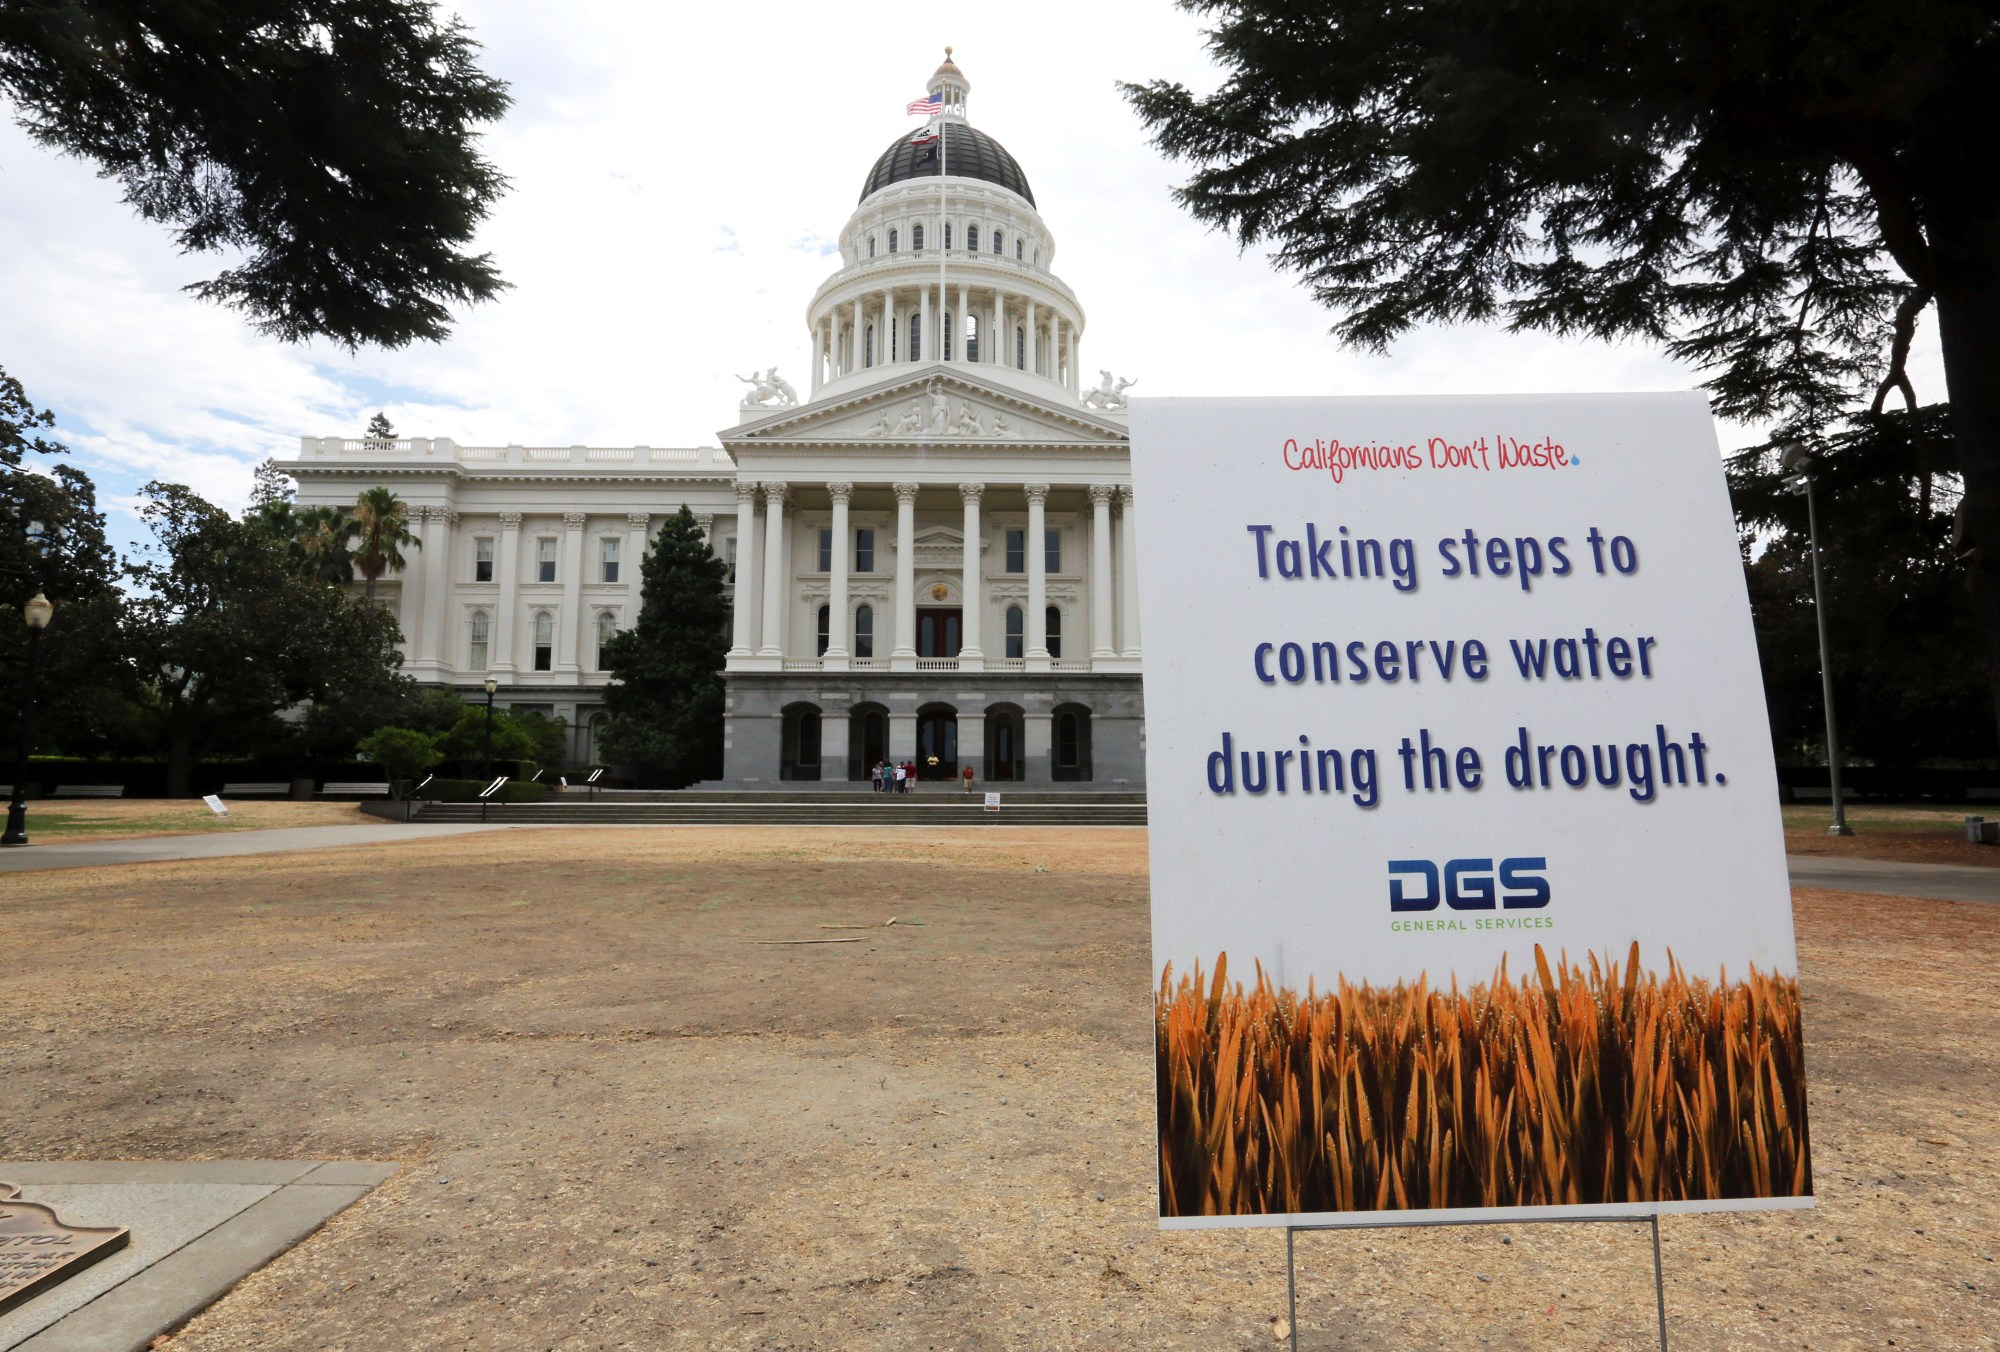 In this July 8, 2014, file photo, is a sign alerting visitors to water conservation efforts at the state Capitol in Sacramento. On April 21, 2021, Calif. Gov. Gavin Newsom declared an emergency executive order in two Northern California counties in response to drought conditions affecting much of the state. The announcement affects Mendocino and Sonoma counties, where Newsom said drought conditions are especially bad. (AP Photo/Rich Pedroncelli, File)